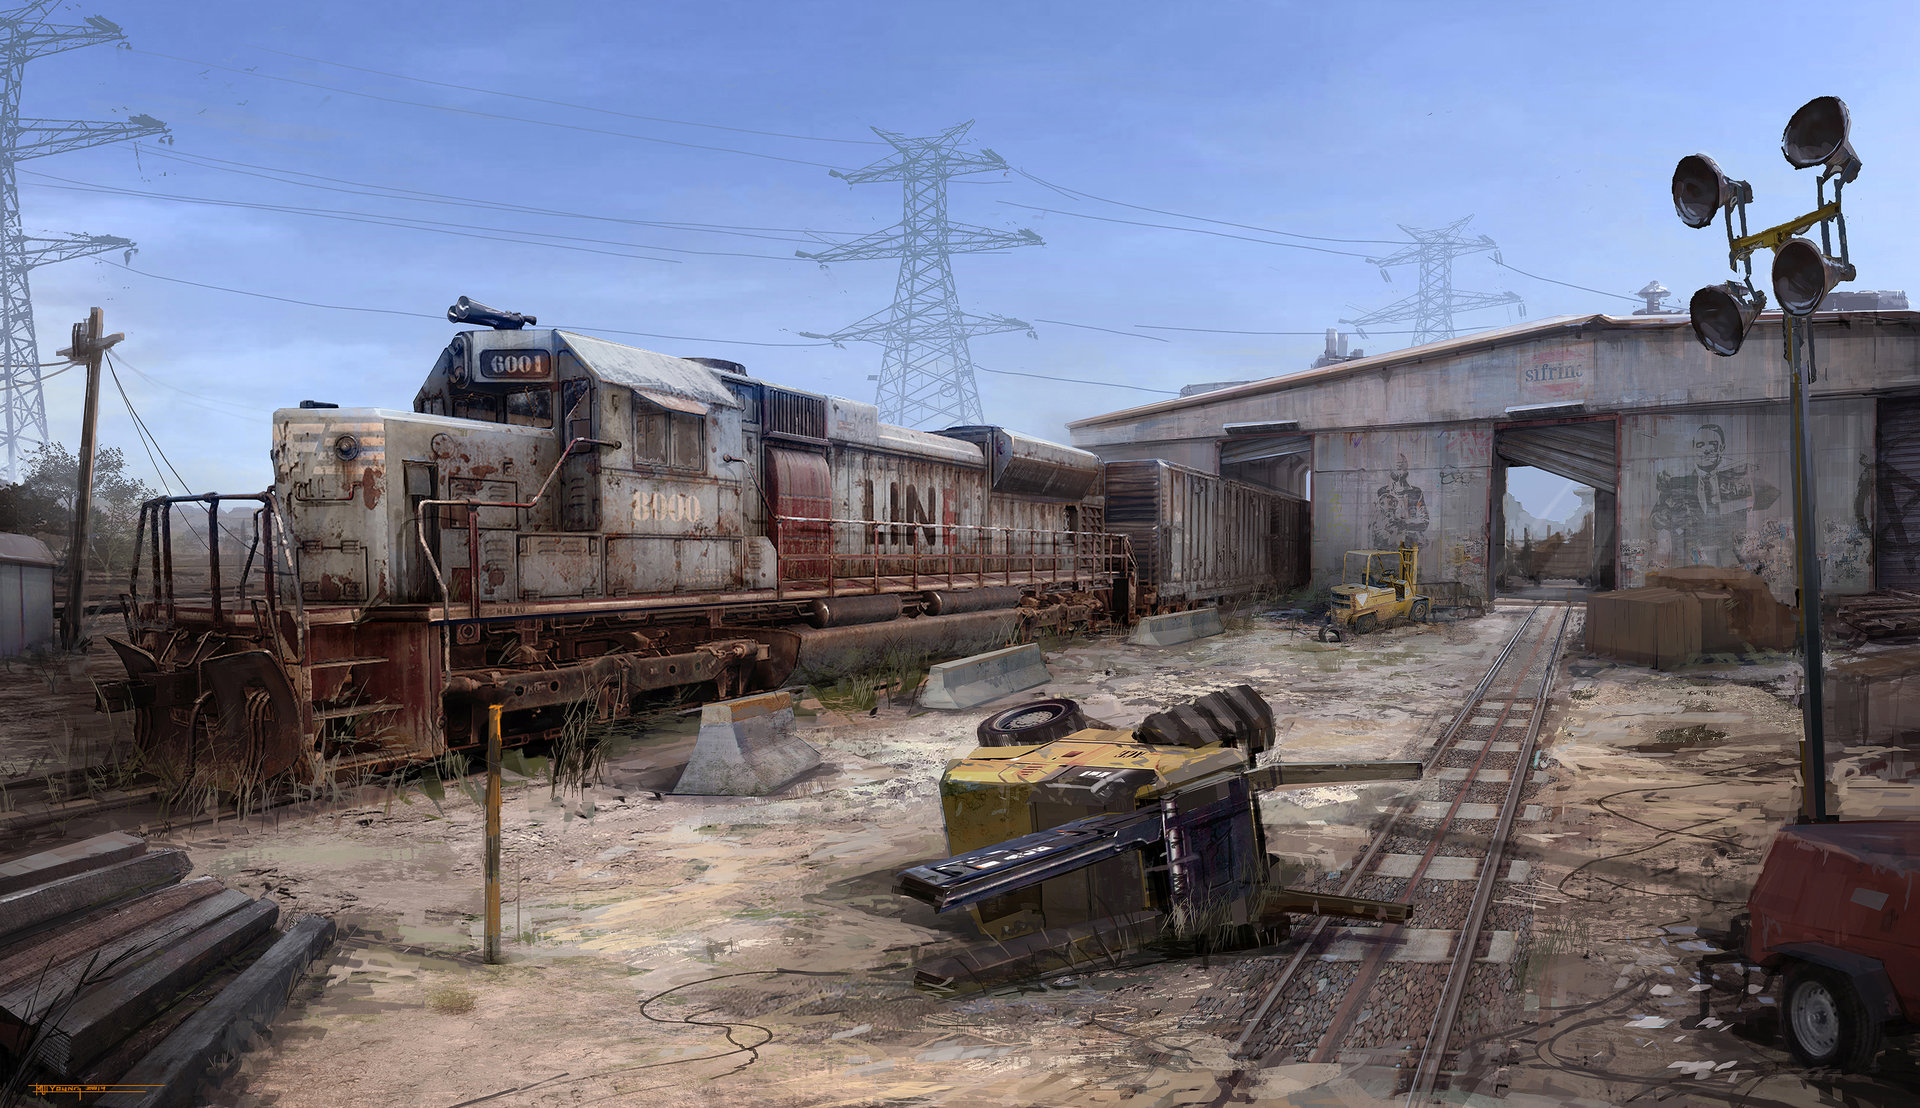 Muyoung kim armor train yard concept